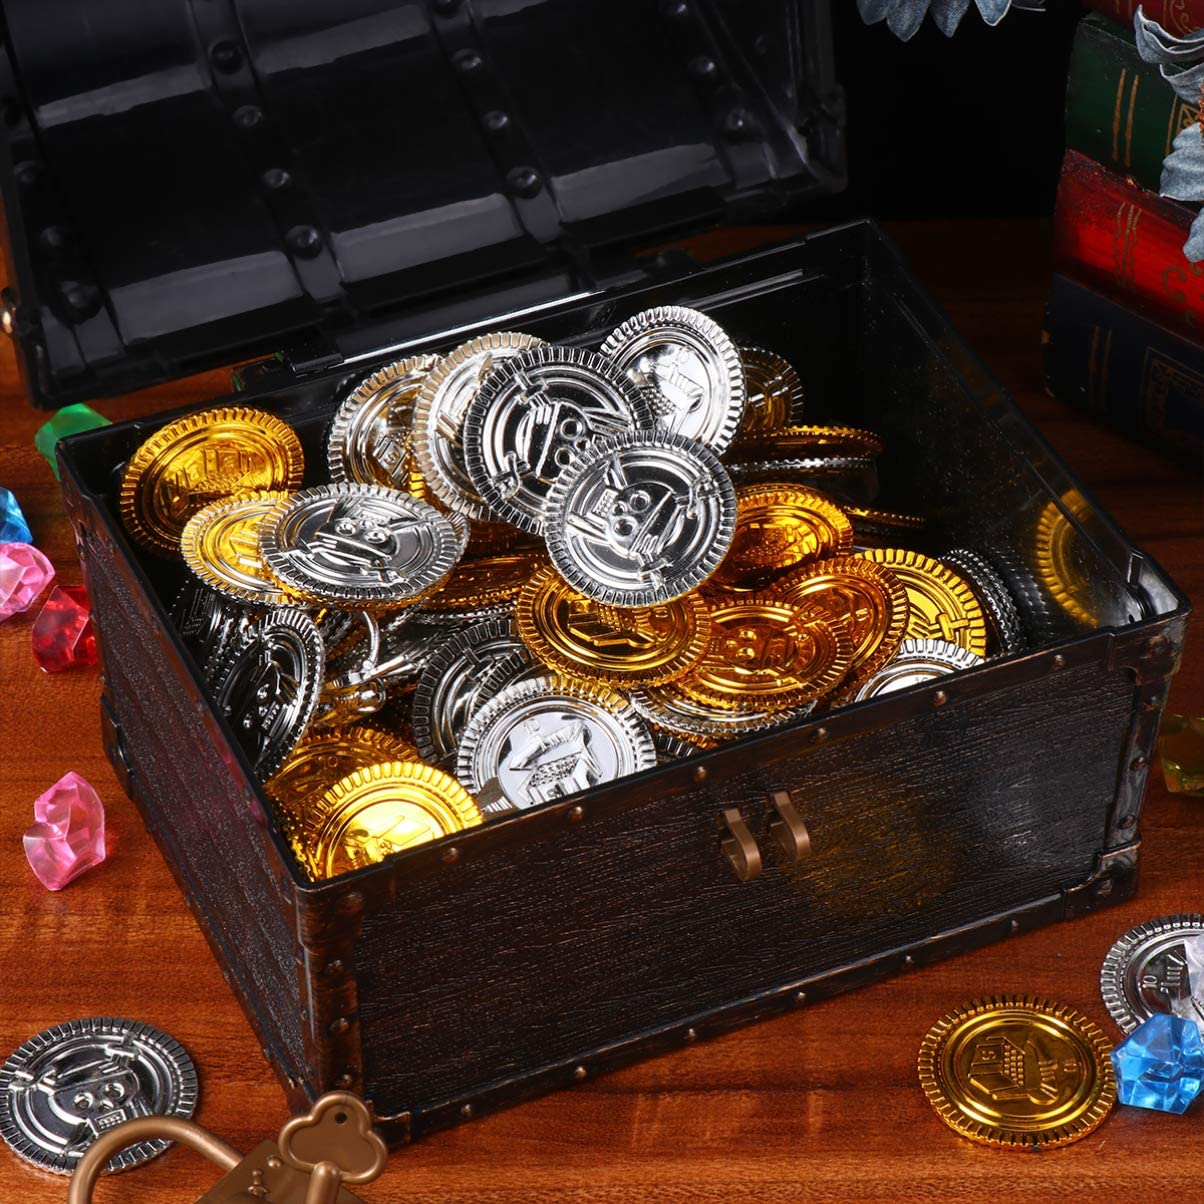 VOSAREA Treasure Chest Toy Kids Treasure Box Toys with Pirate Gold Coins and Gems for Boys Girls Assorted Color